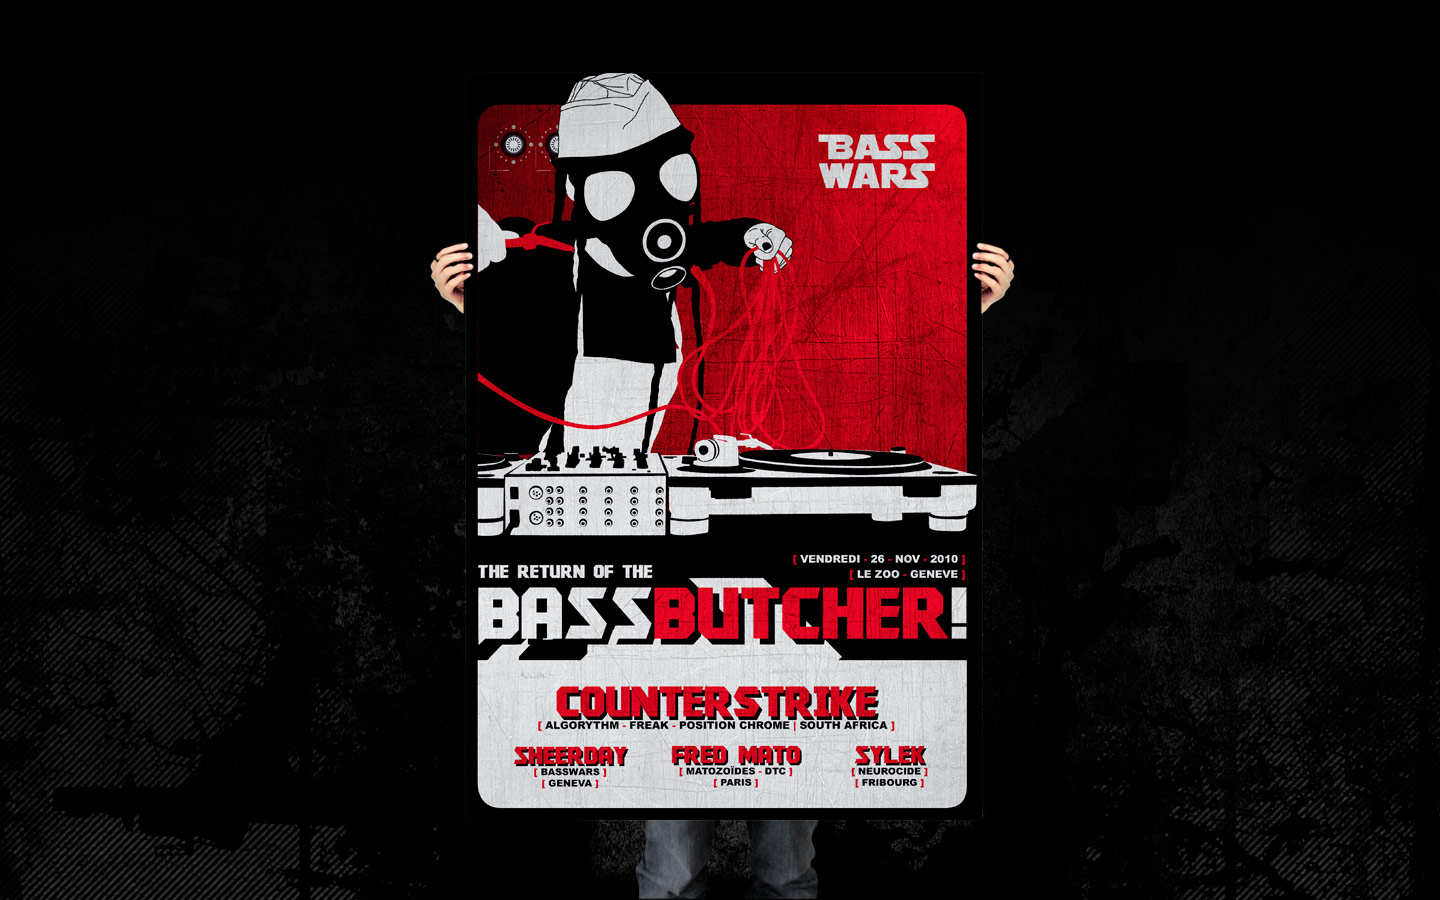 Basswars - The Return of The Bass Butcher ! - Laurent Lemoigne - Donanubis - Don Anubis - Graphic Design - Flyer - Bass Wars - Usine - Le Zoo - Geneva - Art - Music - Electronic - Party - Event - Flyer - Poster - Industrial - Factory - Dark - Gas Mask - Gasmask - Gazmask - Butcher - Turntable - Mk2 - MKII - Fetish - Alternative - Underground - Drum and Bass - d'n'b - Hard Drum - Counterstrike / Algorythm / Freak / Position Chrome - Sheerday / Basswars - Fred Mato / Matozoides / DTC - Sylex / Neurocide - Metal - Hard - Rock - Death - Band - Illustration